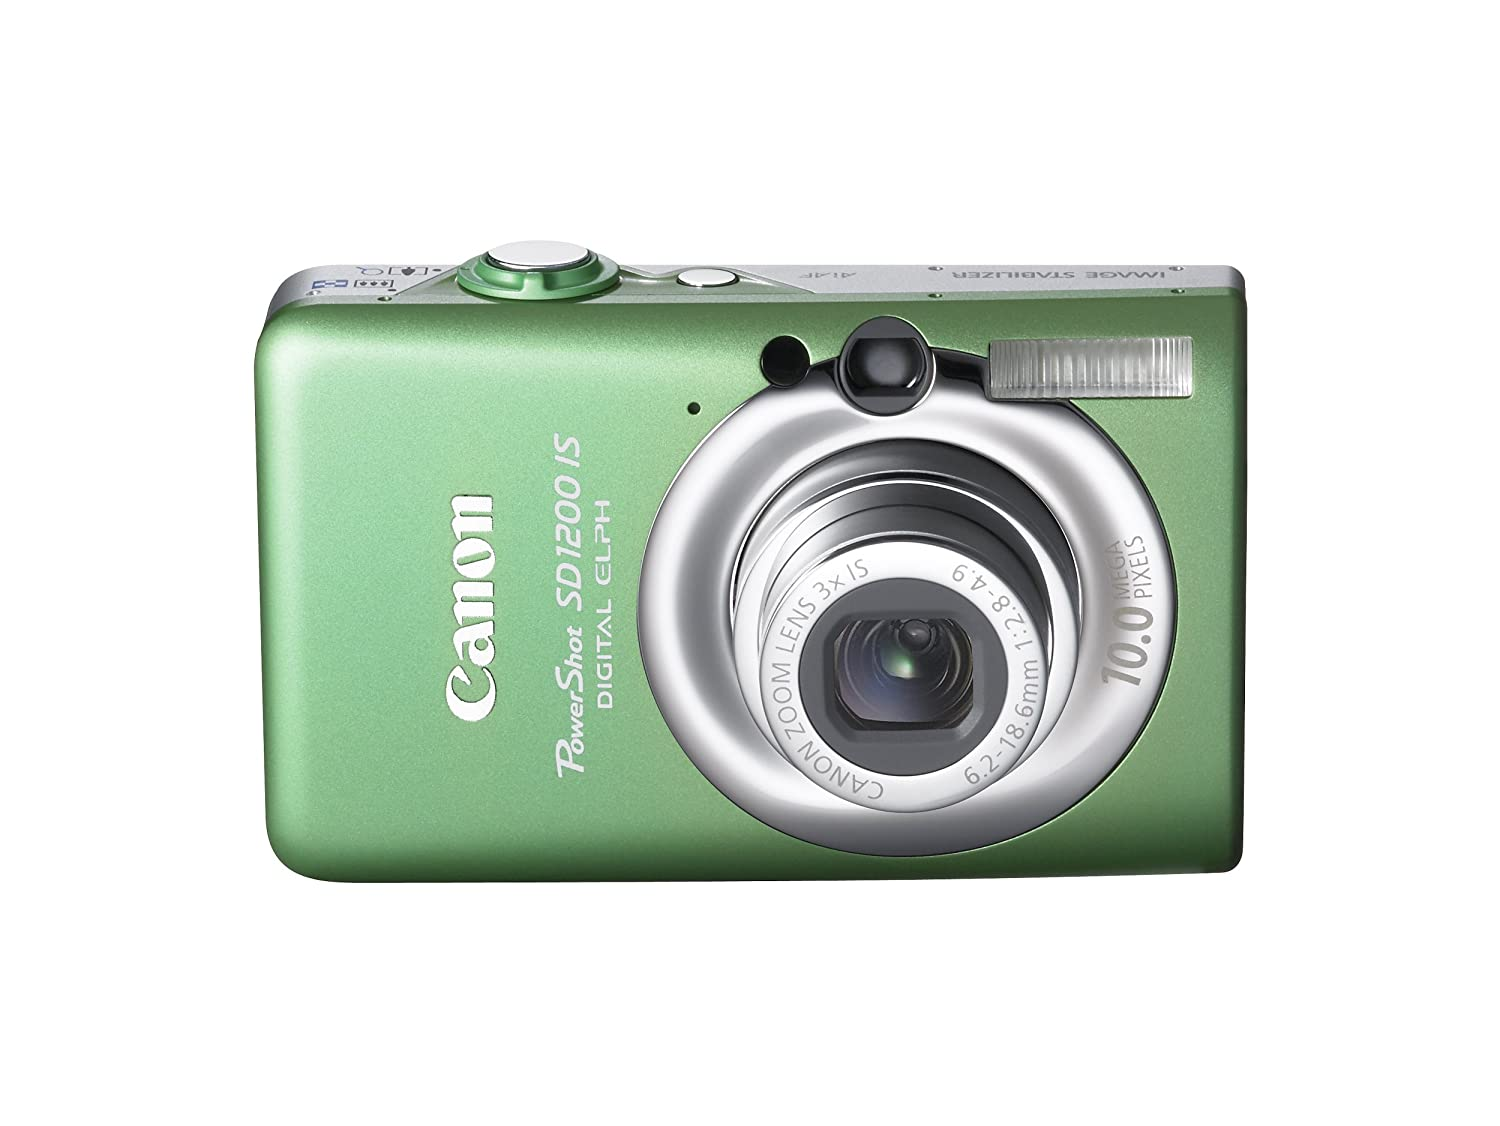 CANON POWERSHOT SD1200 IS DIGITAL ELPH DRIVERS FOR WINDOWS XP